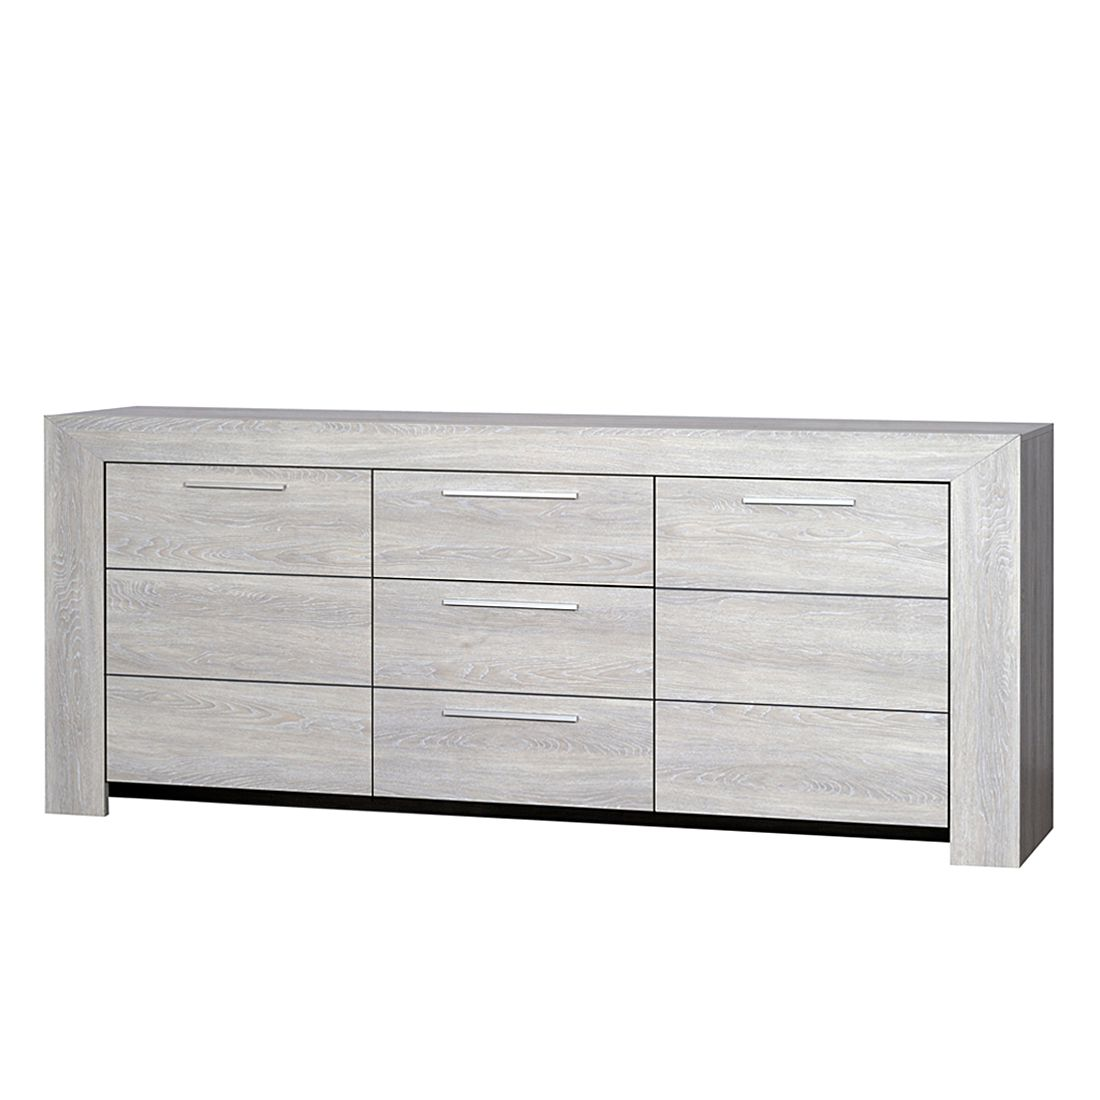 sideboard rimini eiche grau dekor mdf. Black Bedroom Furniture Sets. Home Design Ideas